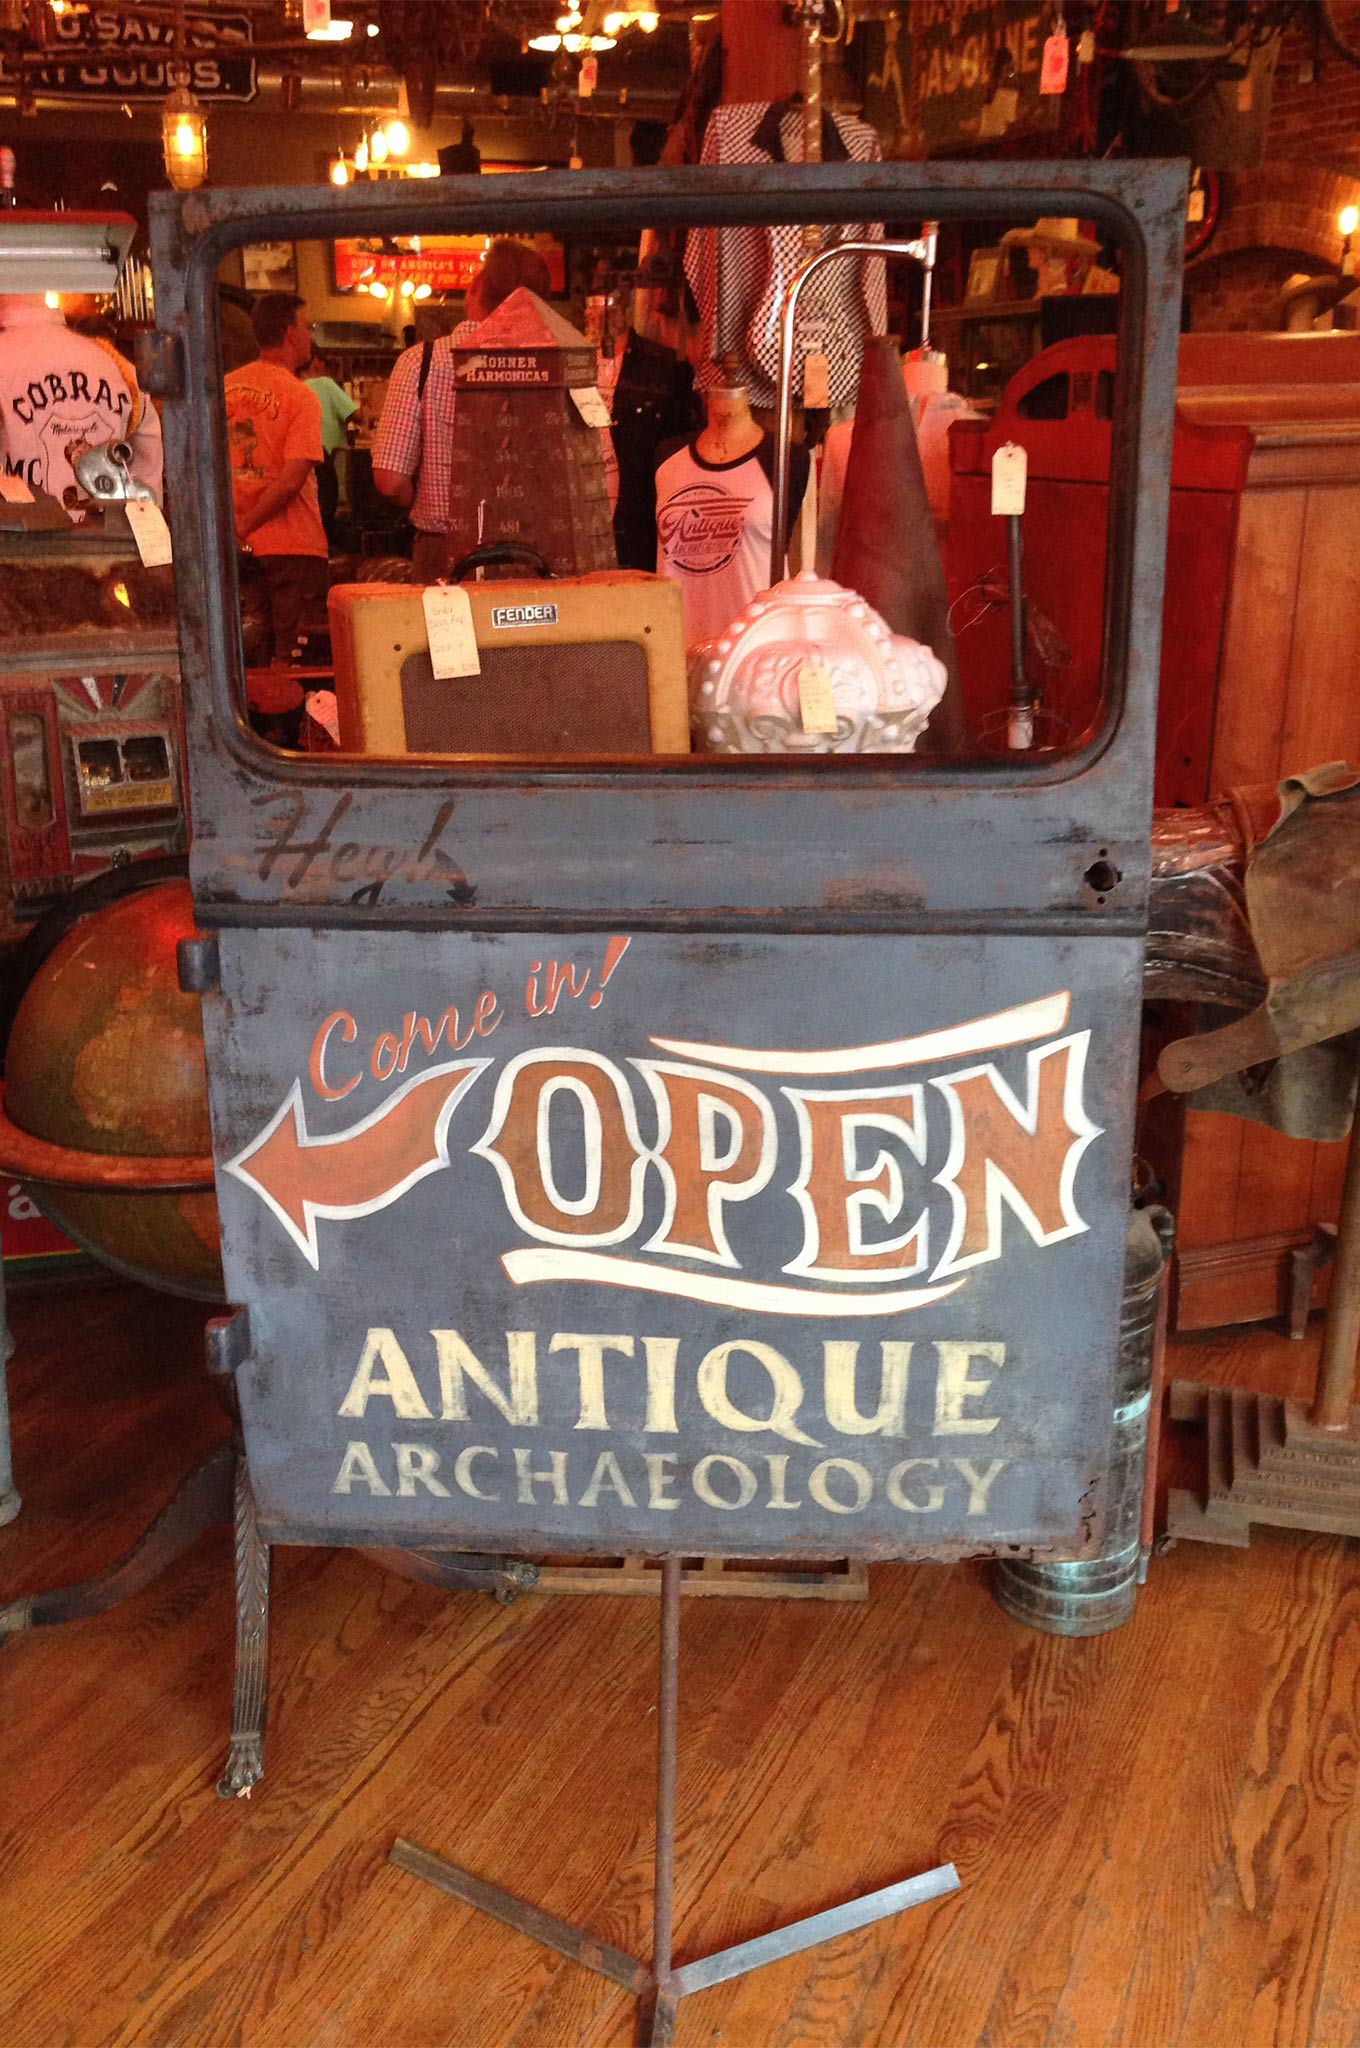 We were greeted by a unique open sign at Antique Archeology in Nashville. While Mike and Frank were not around the day we visited, we recognized many items that have been featured on American Pickers.